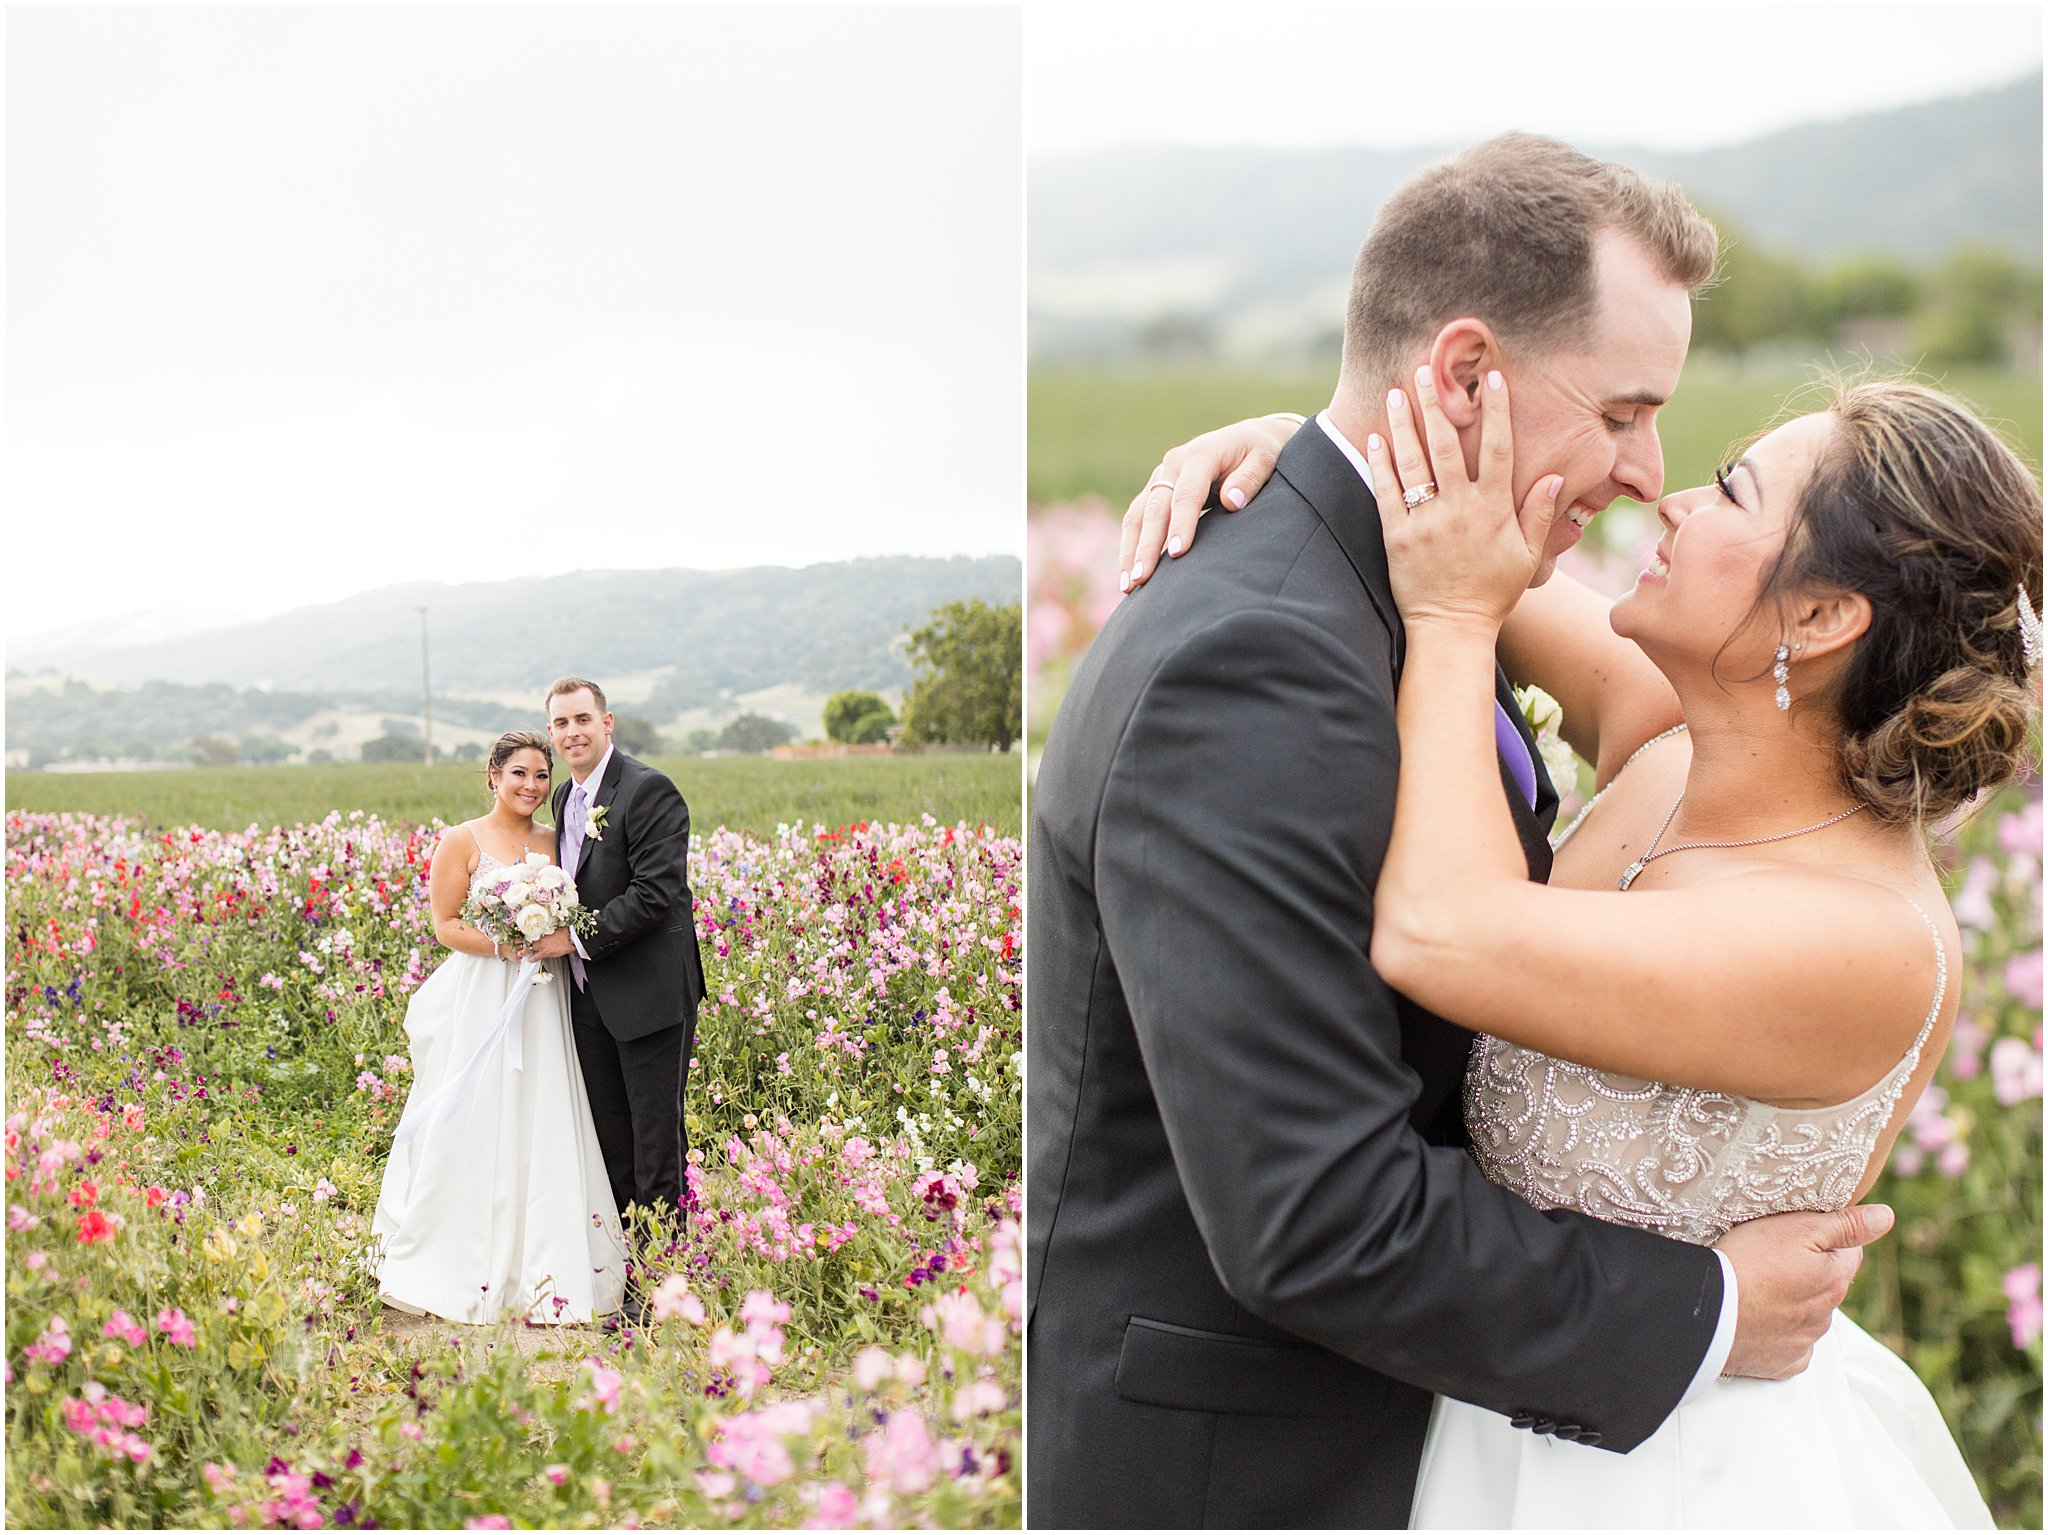 2019 wedding san juan bautista hacienda de leal vineyards bay area wedding photographer_0075.jpg